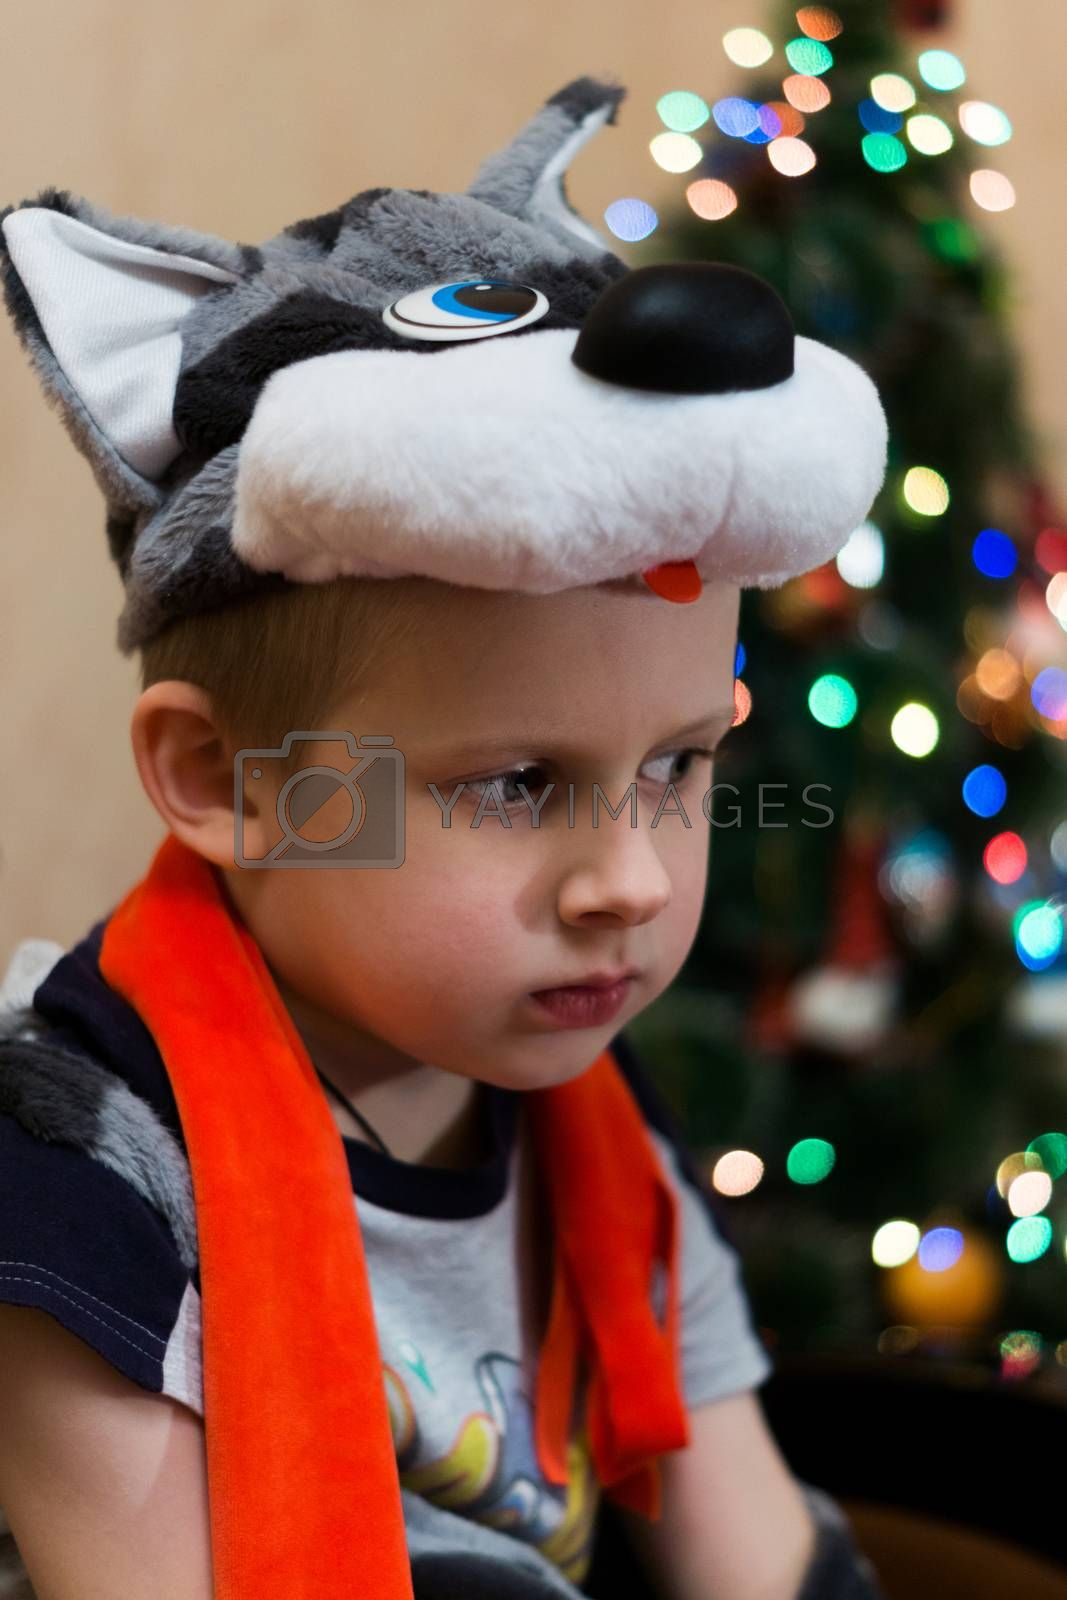 The photo depicts a sad boy at the tree